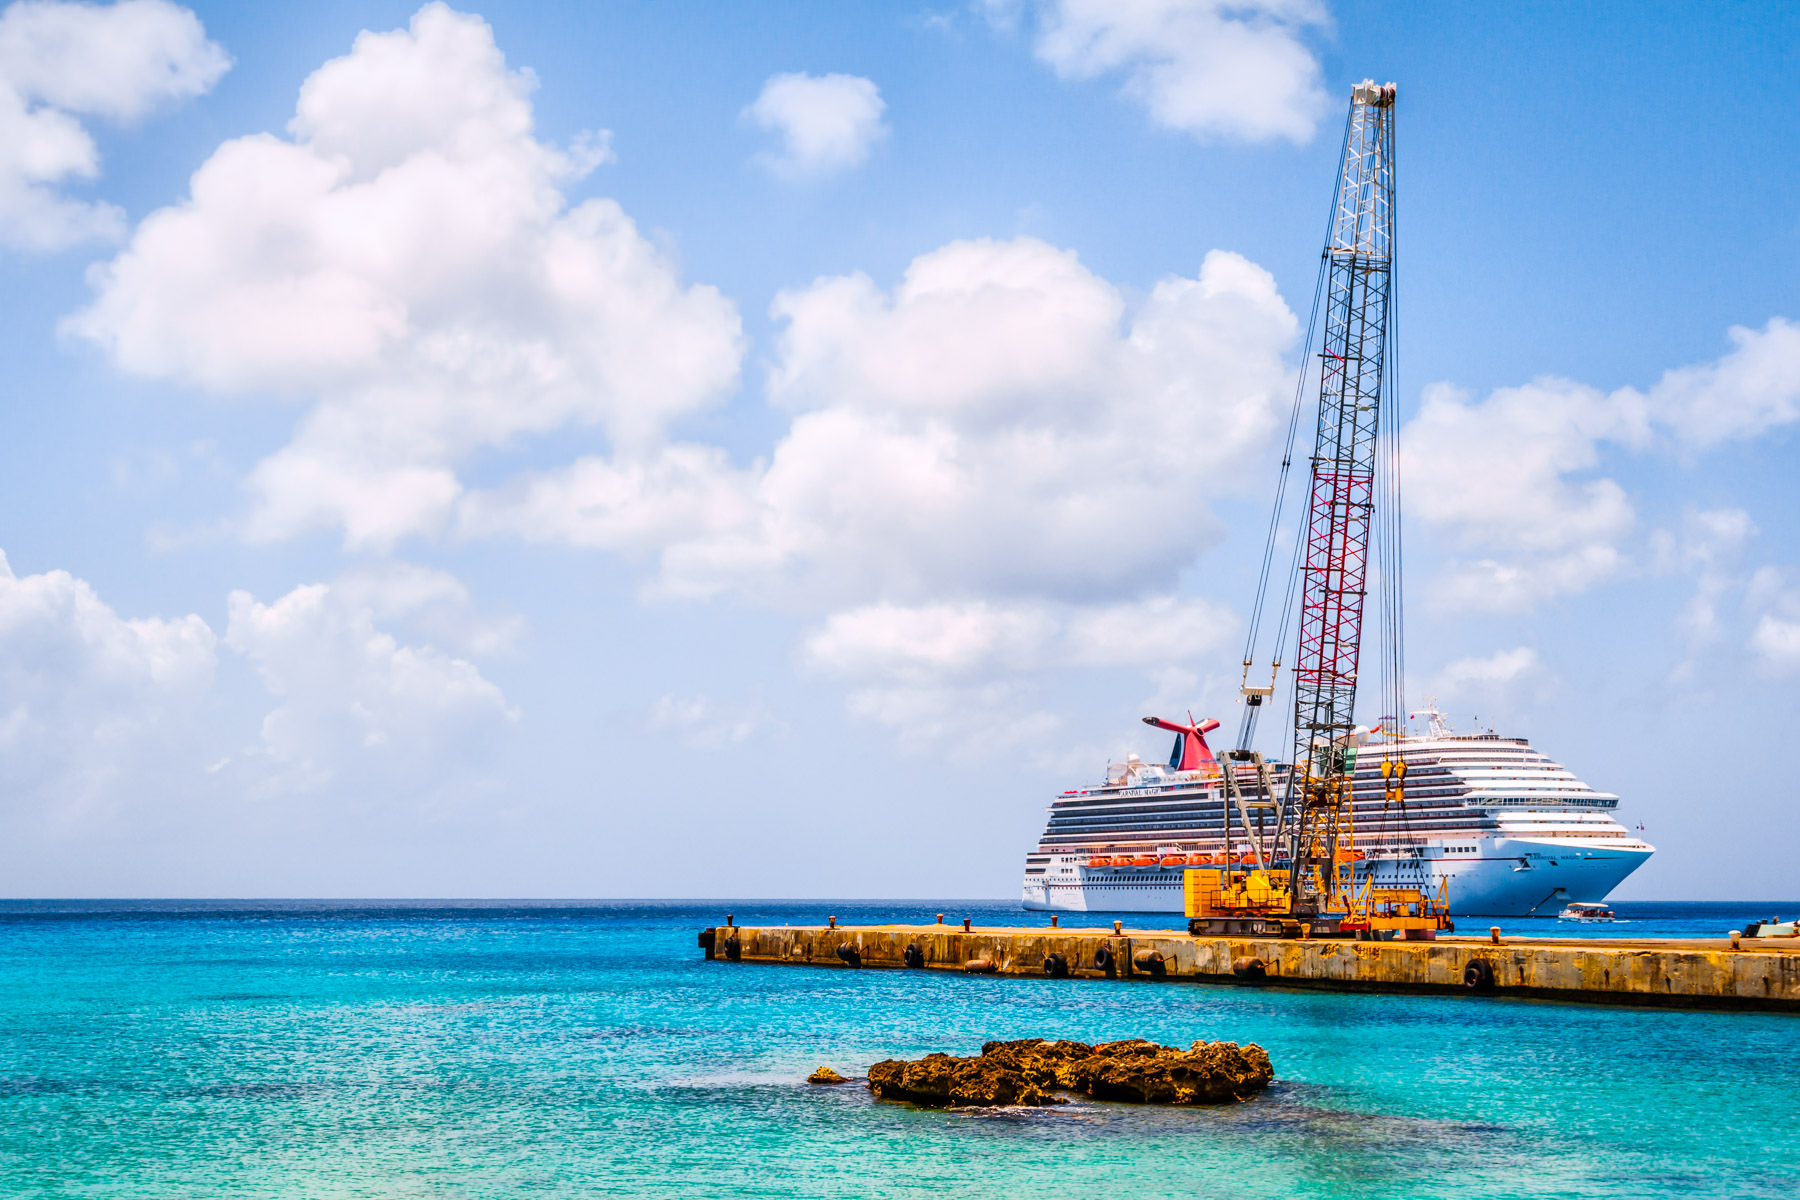 The cruise ship Carnival Magic is obscured by a crane on a nearby pier along the waterfront in George Town, Grand Cayman.